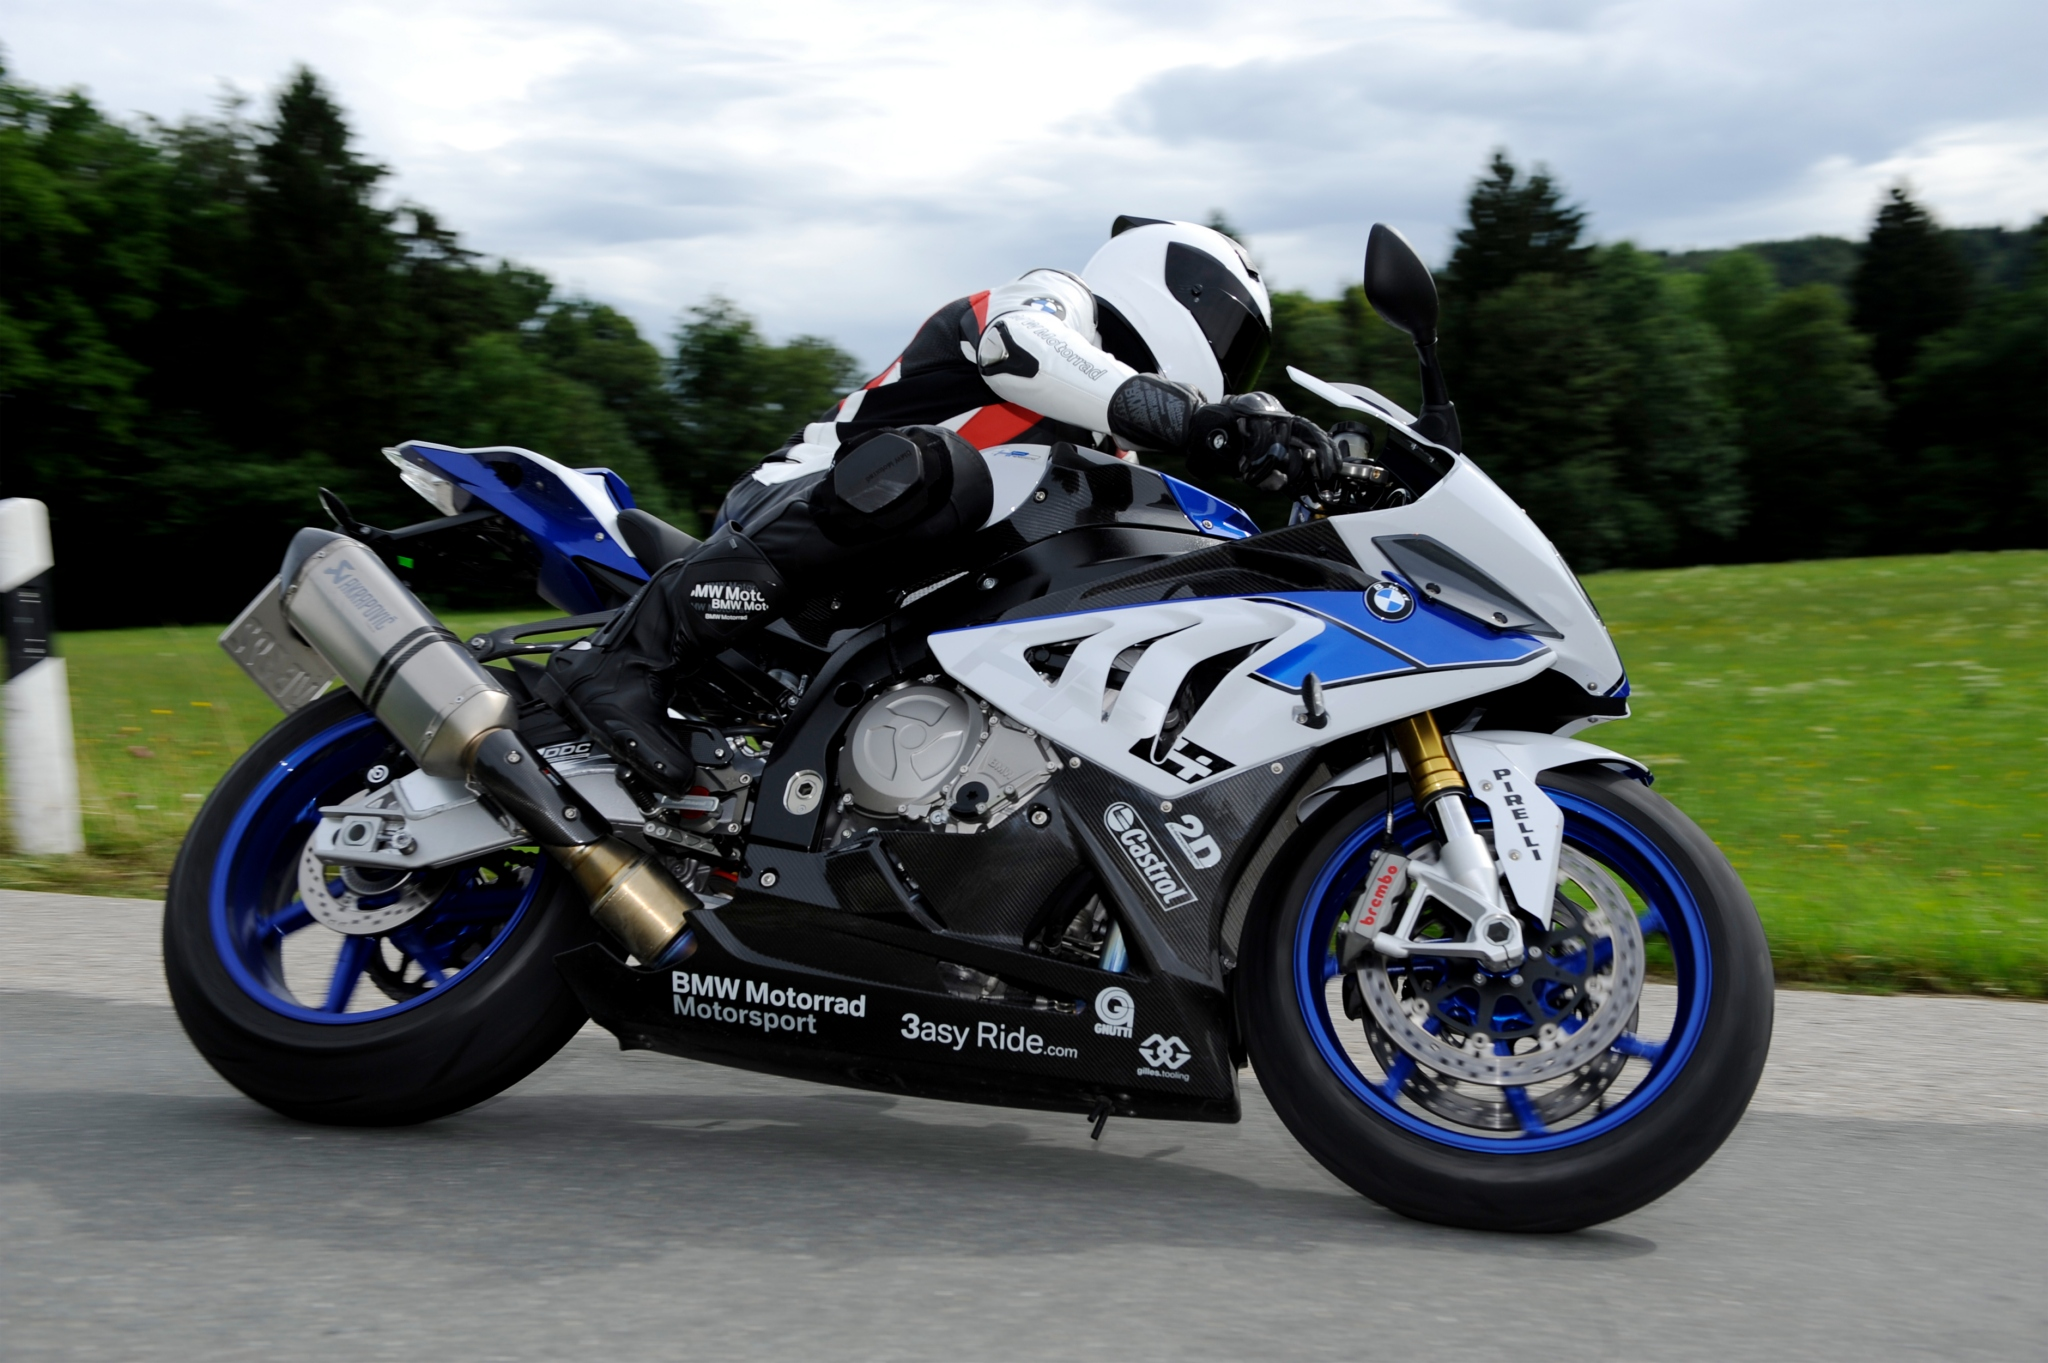 bmw announces us motorcycle prices, ditches the hp4 and more